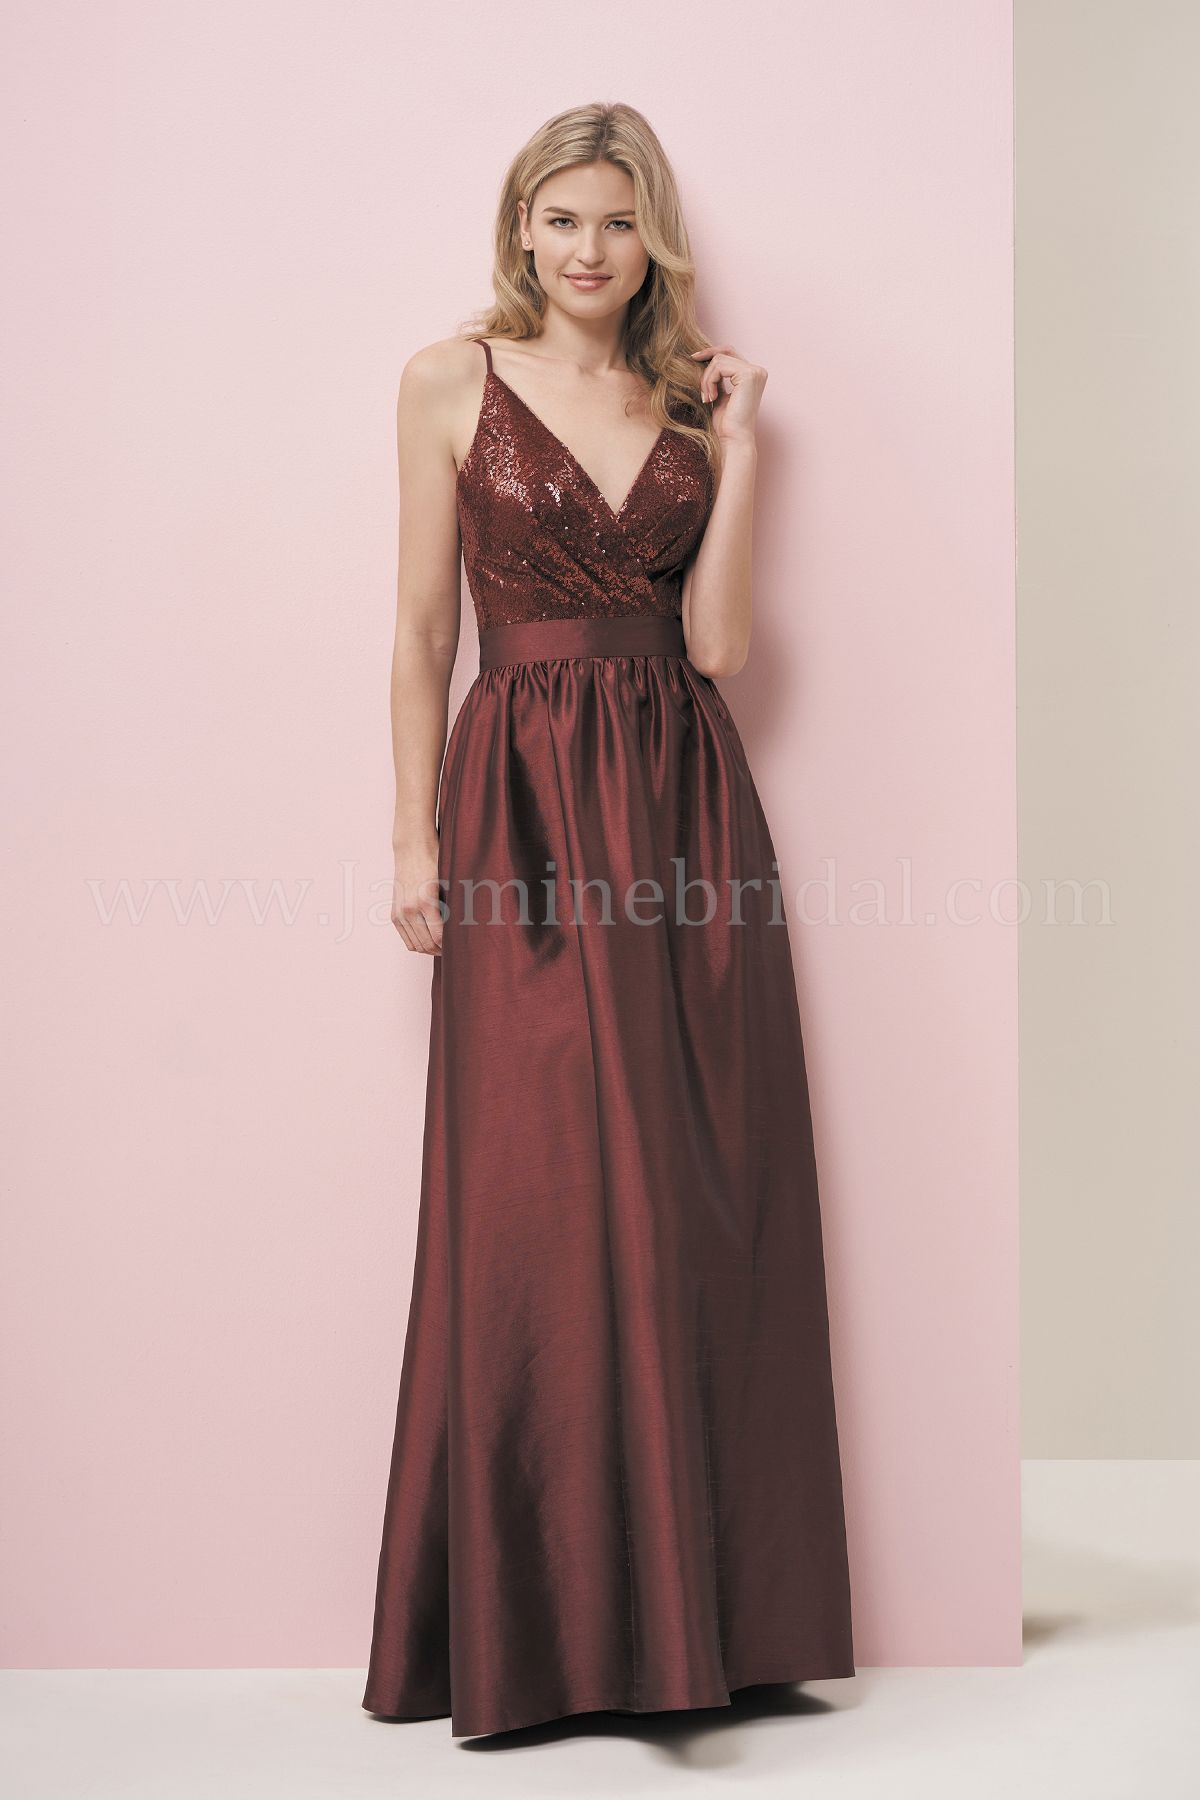 bridesmaid-dresses-P196059-F